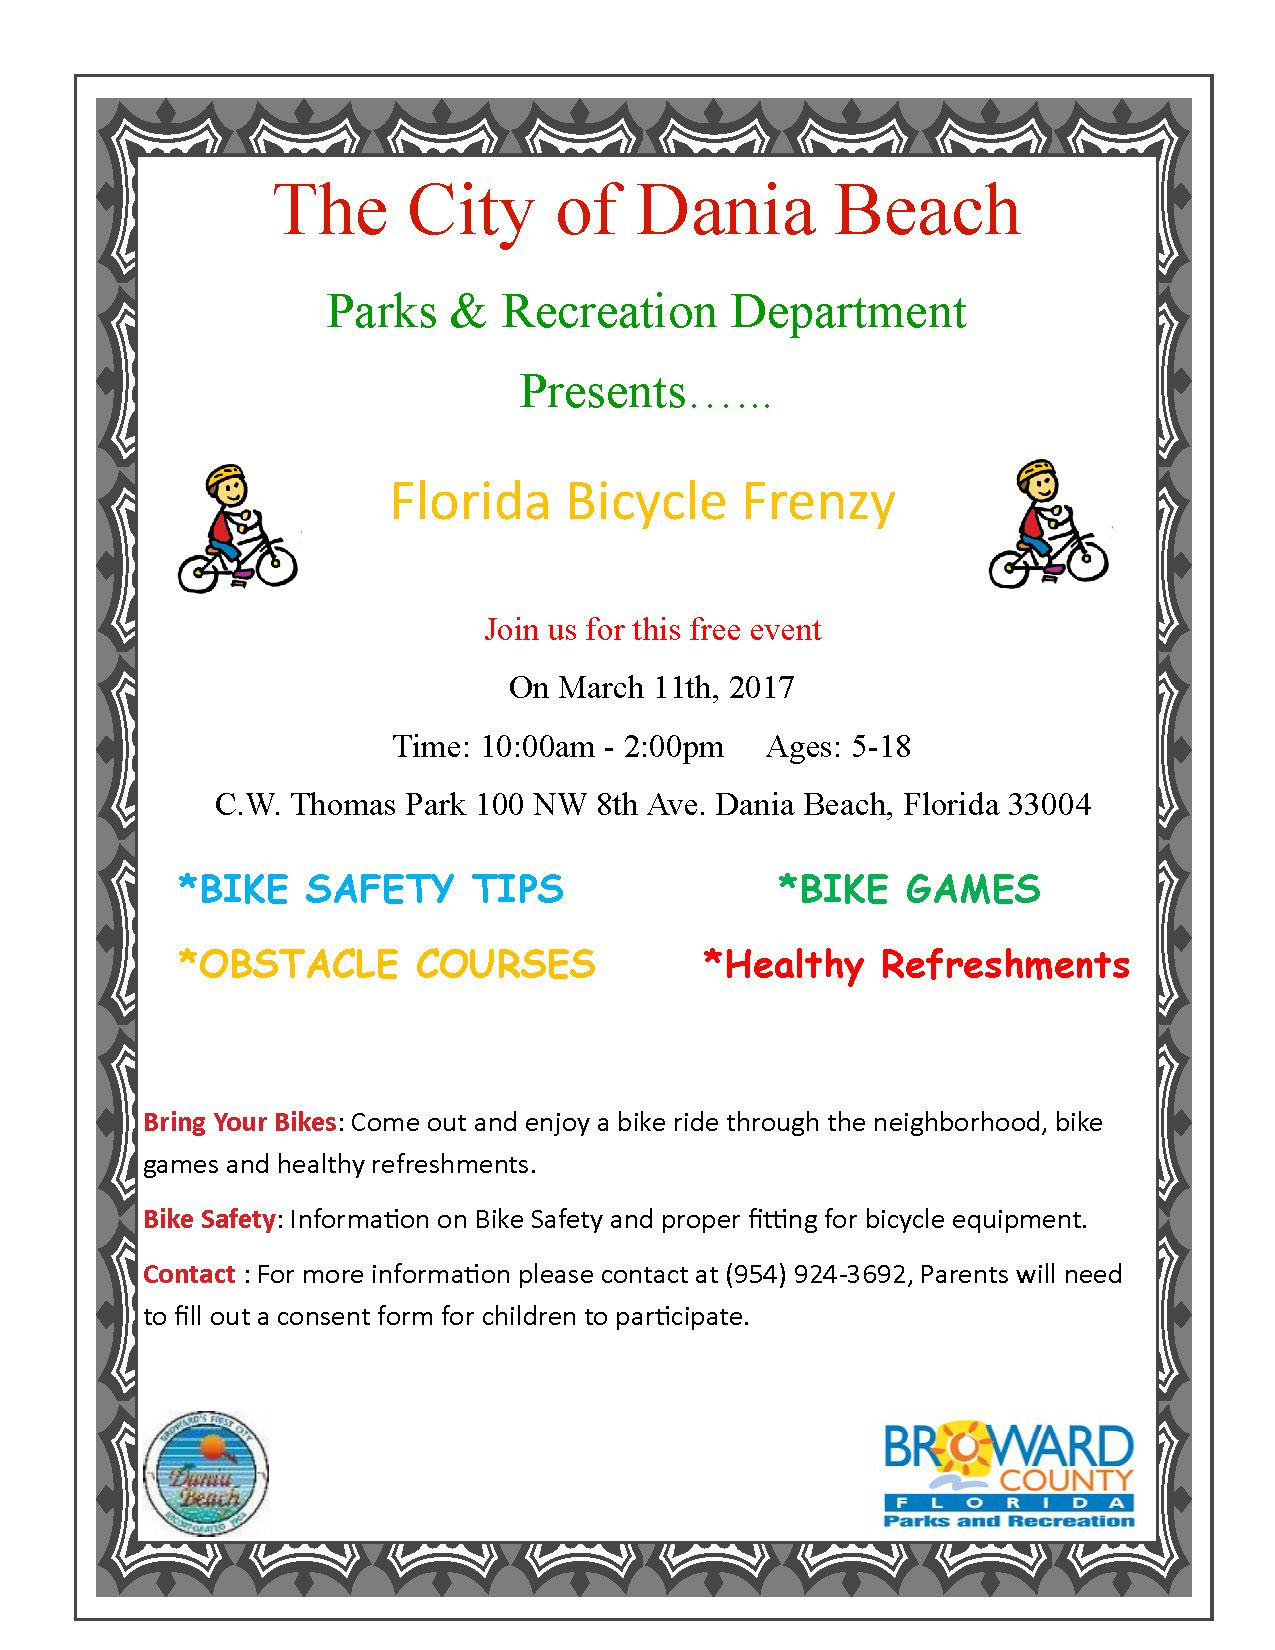 March 11 Bicycle Frenzy Dania Beach, Bring Your Bikes